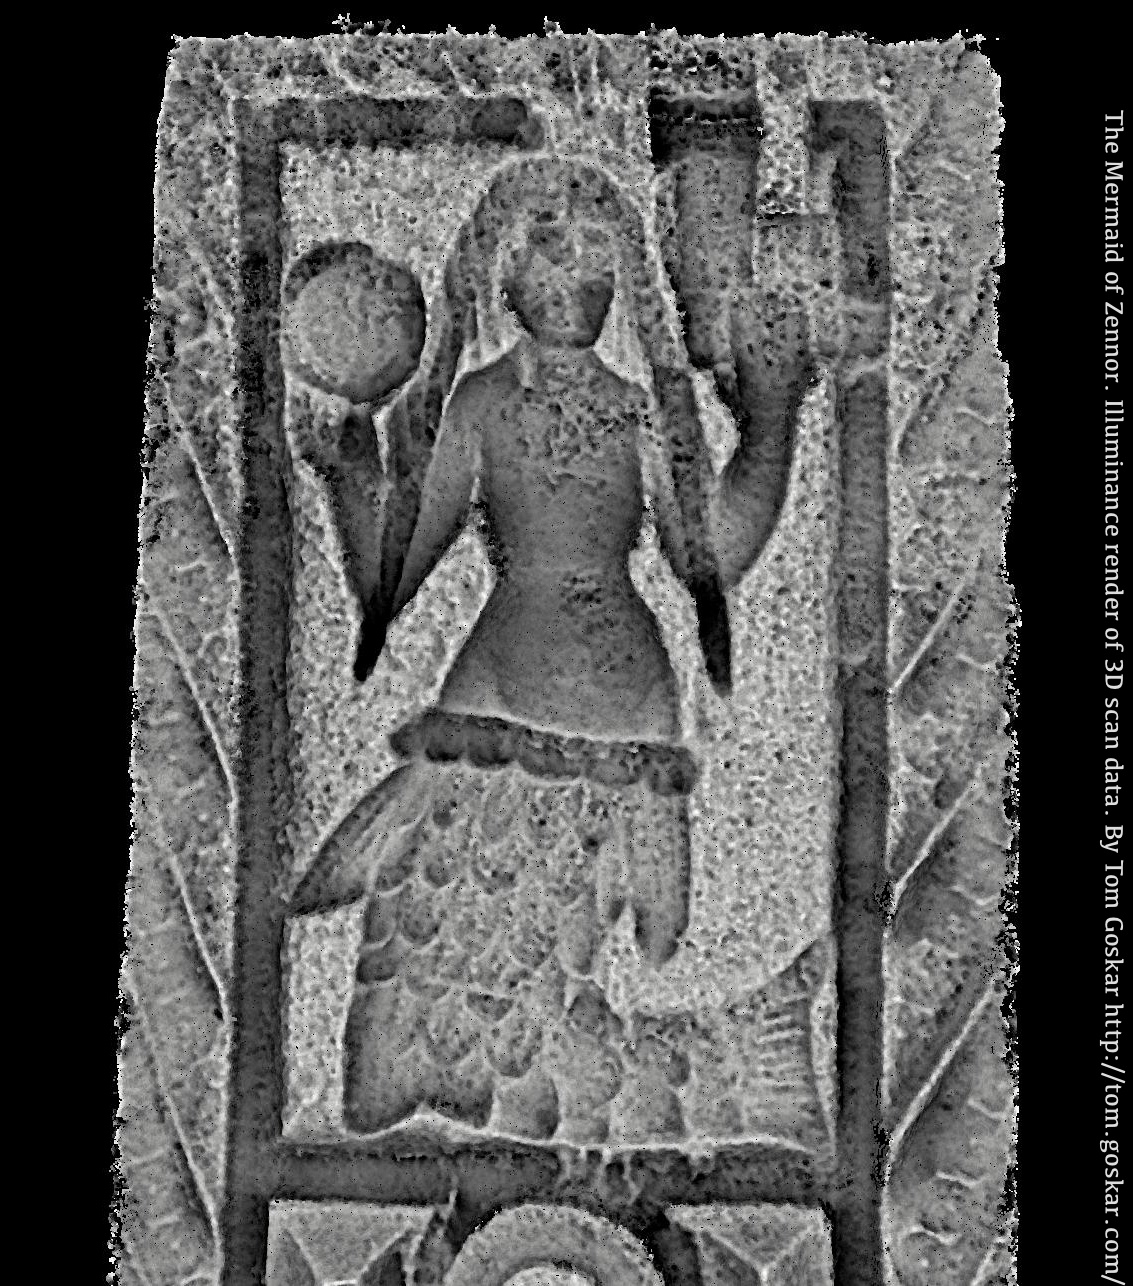 Illuminance (occlusion) render of the low-resolution 3D model of the Mermaid of Zennor